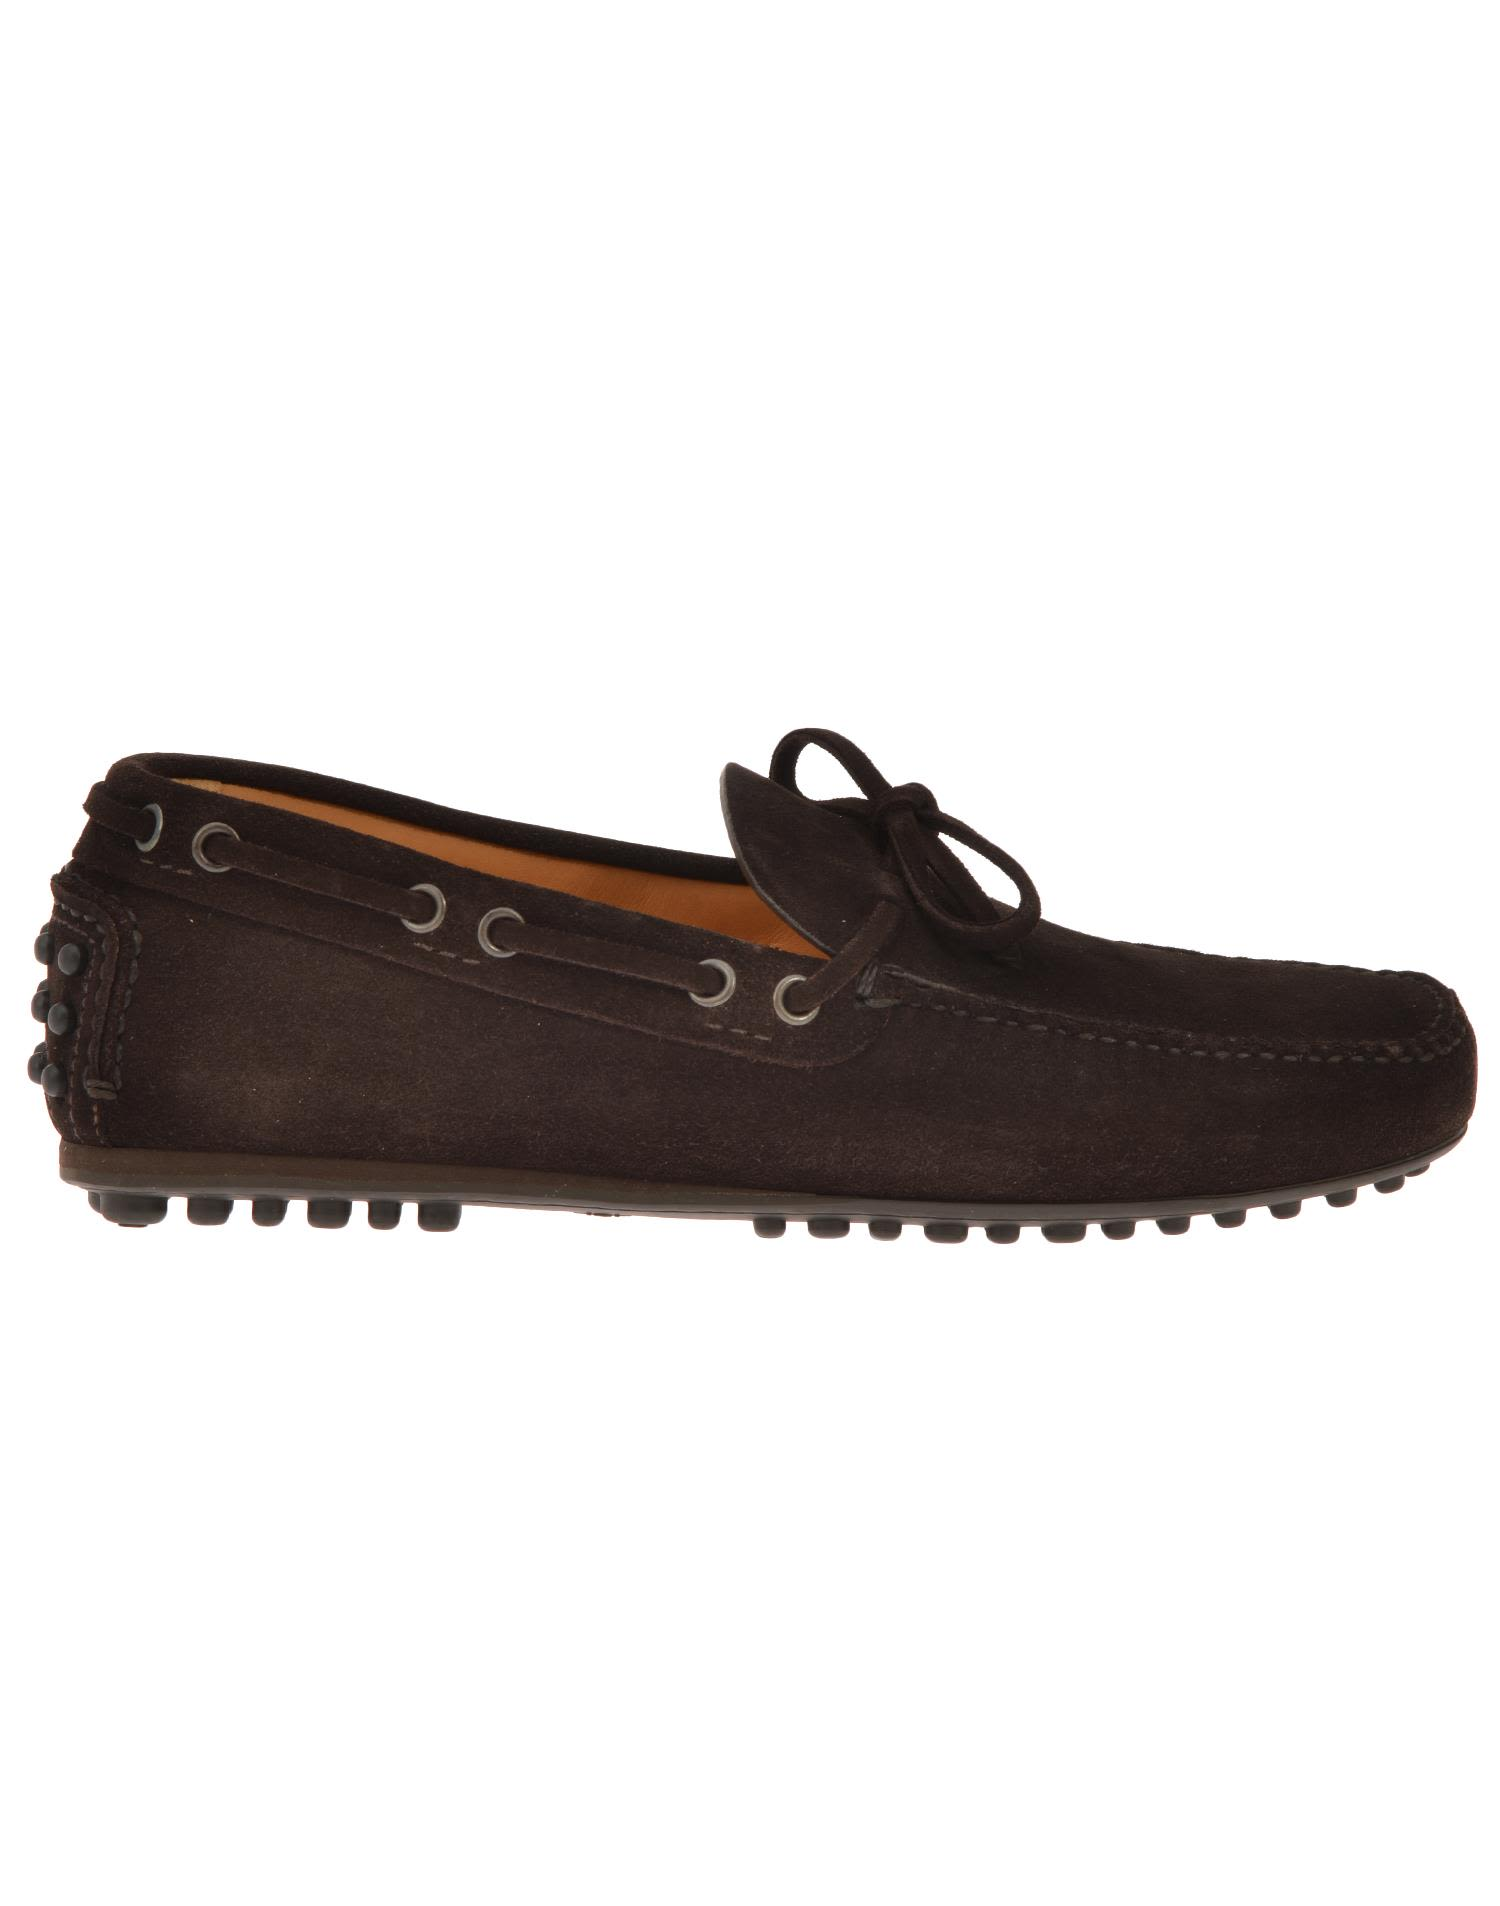 Car Shoe Leather Loafer